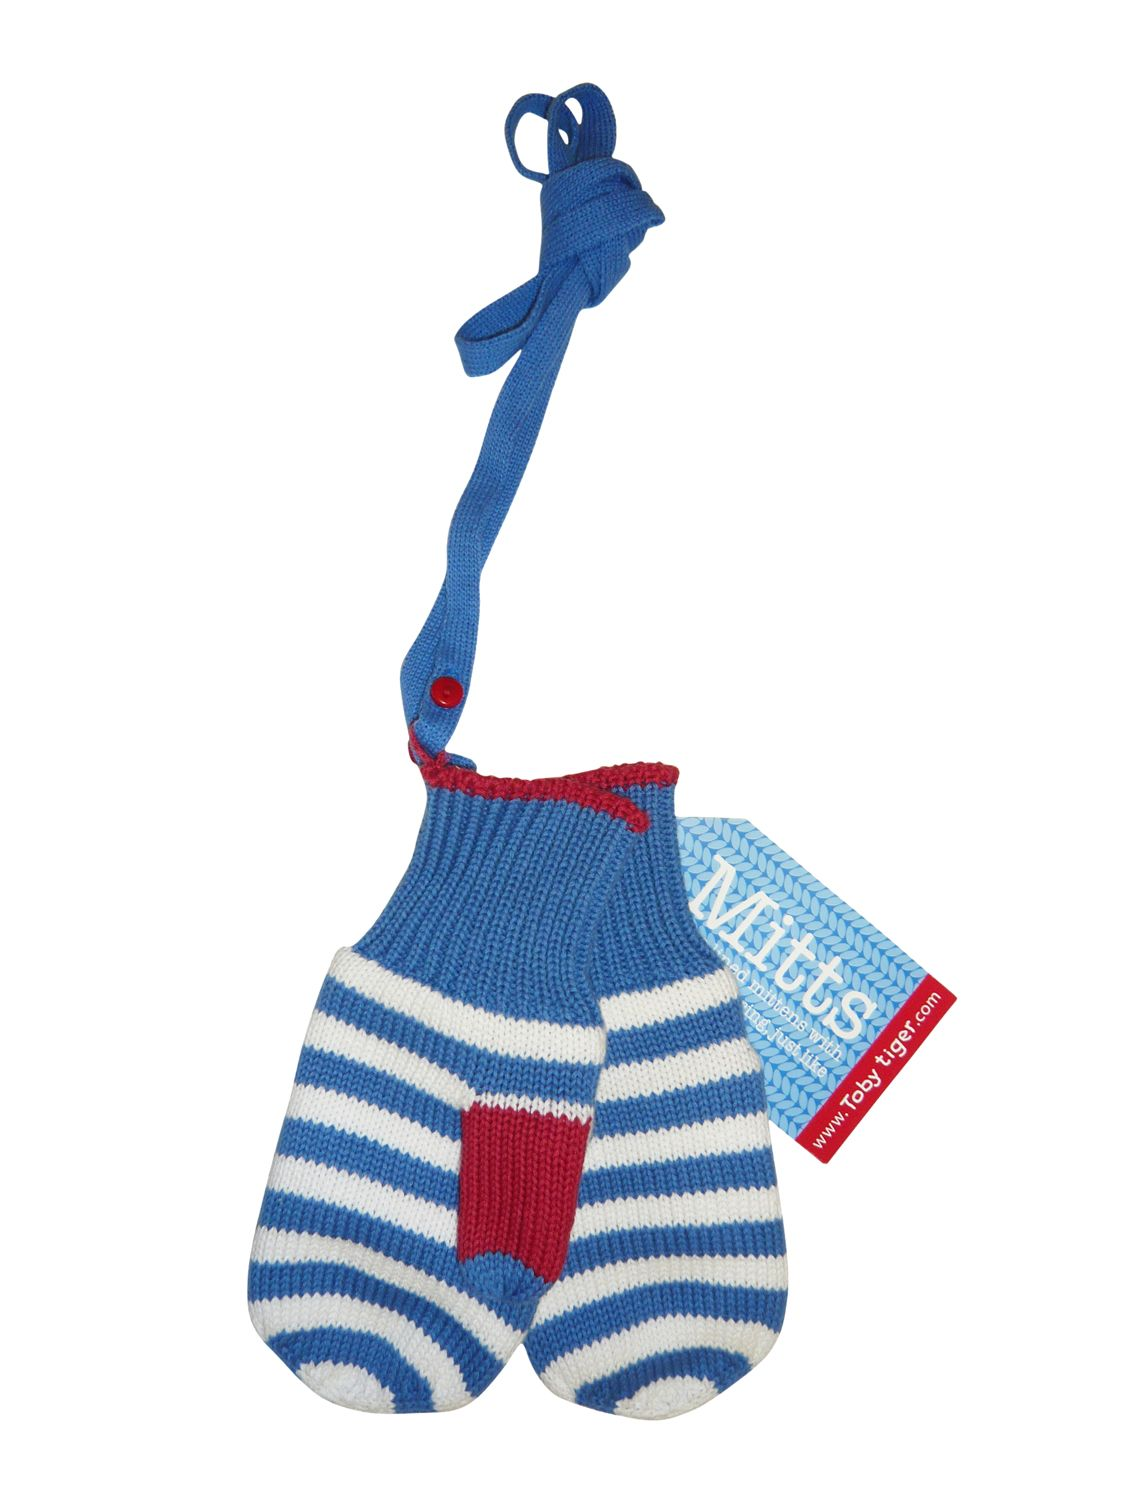 Boy`s knitted mitts, detachable strings